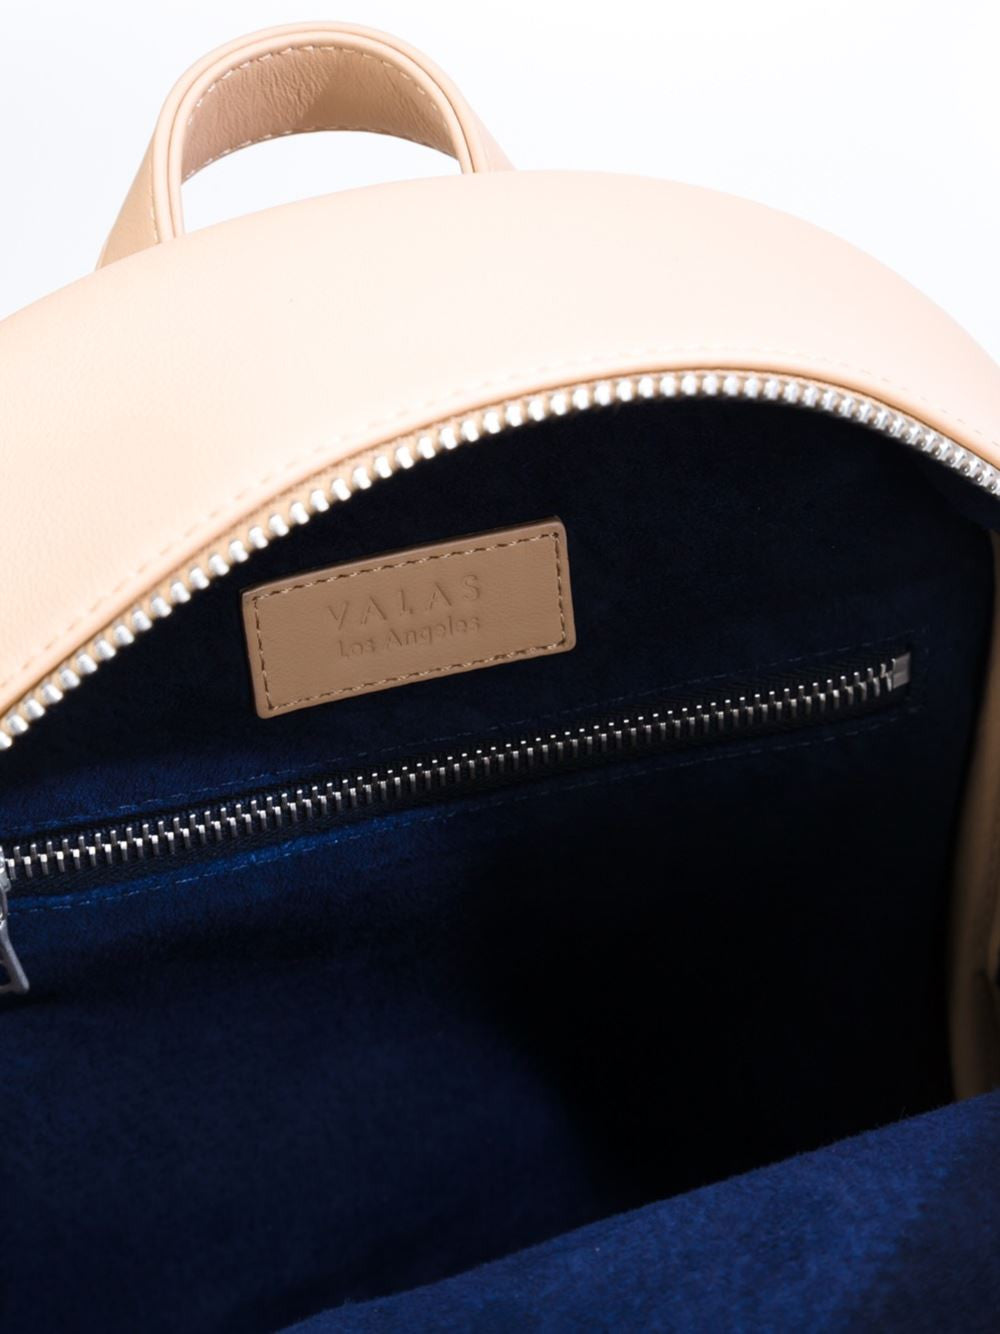 Leather 'Micro Rockefeller' Backpack | VLSMR003 MICRO ROCKEFELLER